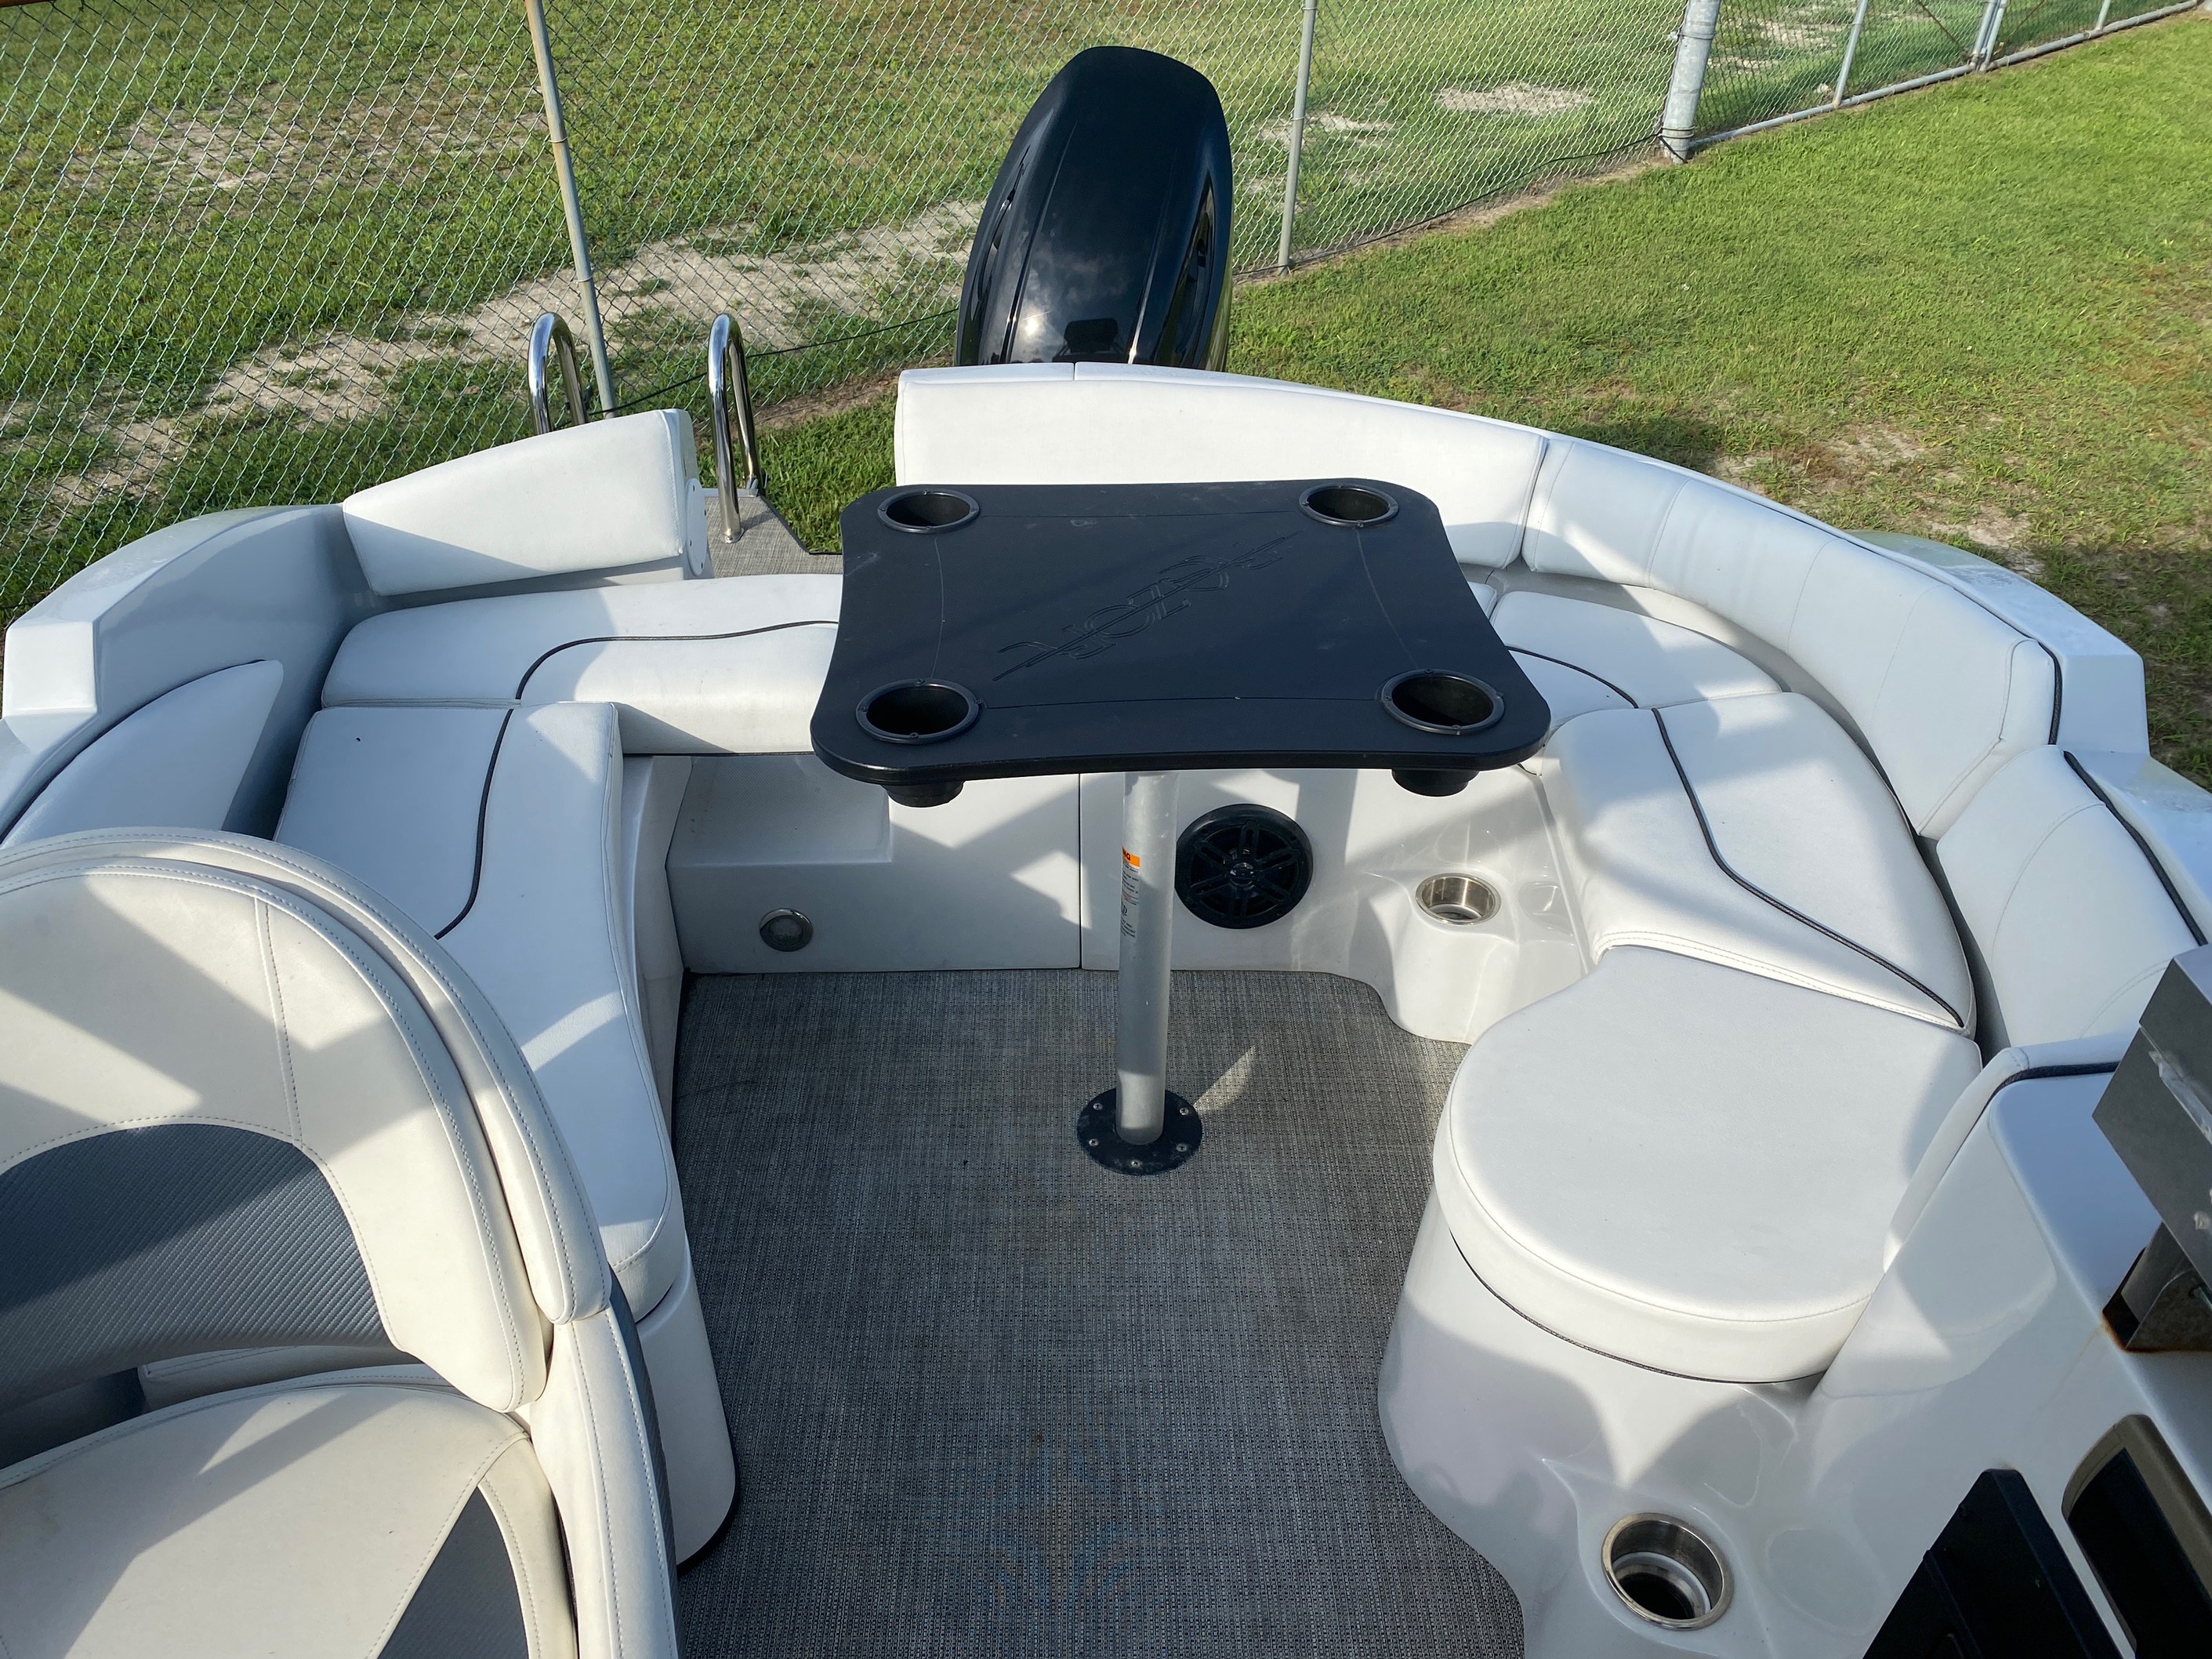 2019 Caravelle boat for sale, model of the boat is 219DD Deck Boat & Image # 14 of 14